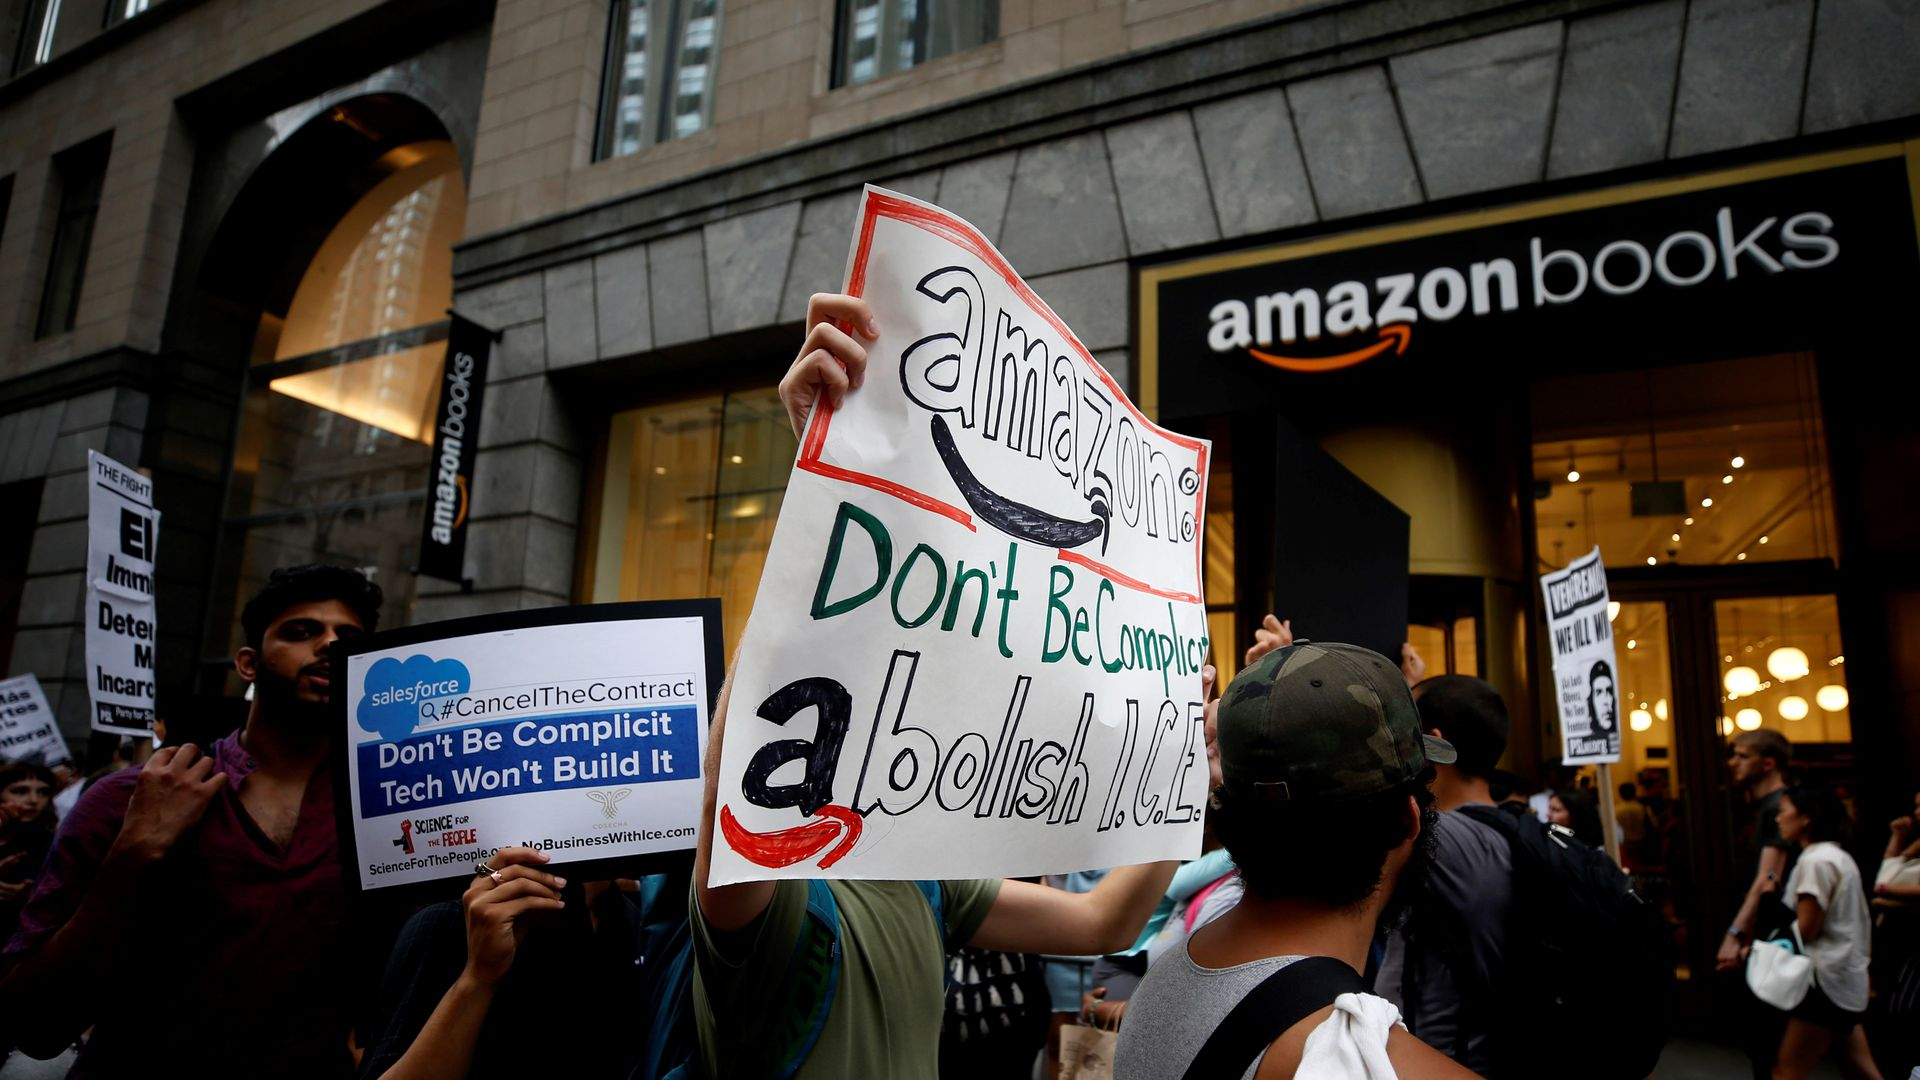 Protesters hold anti-ICE signs in front of an Amazon bookstore